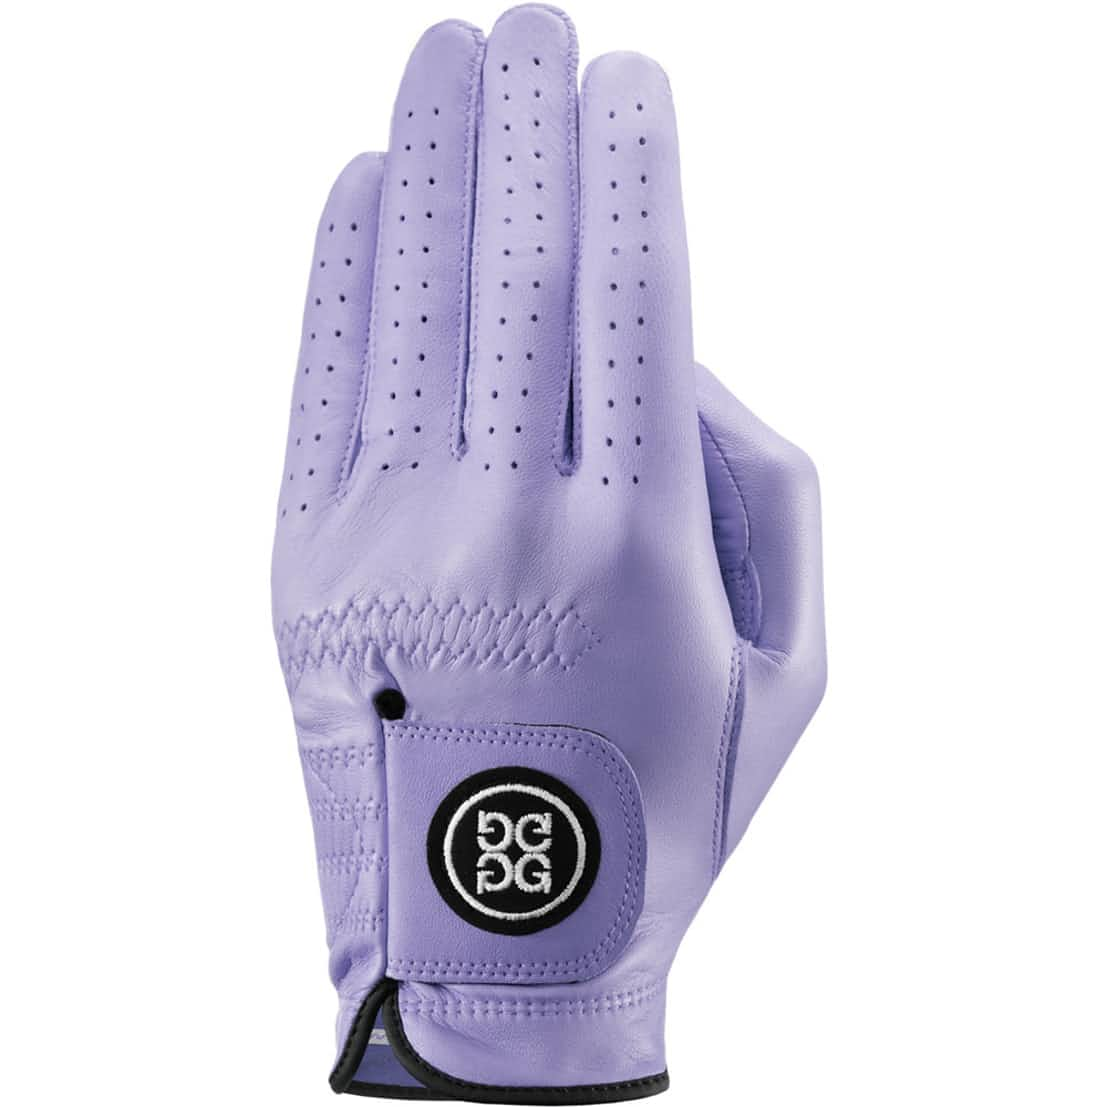 Womens Left Glove Lavender - 2020